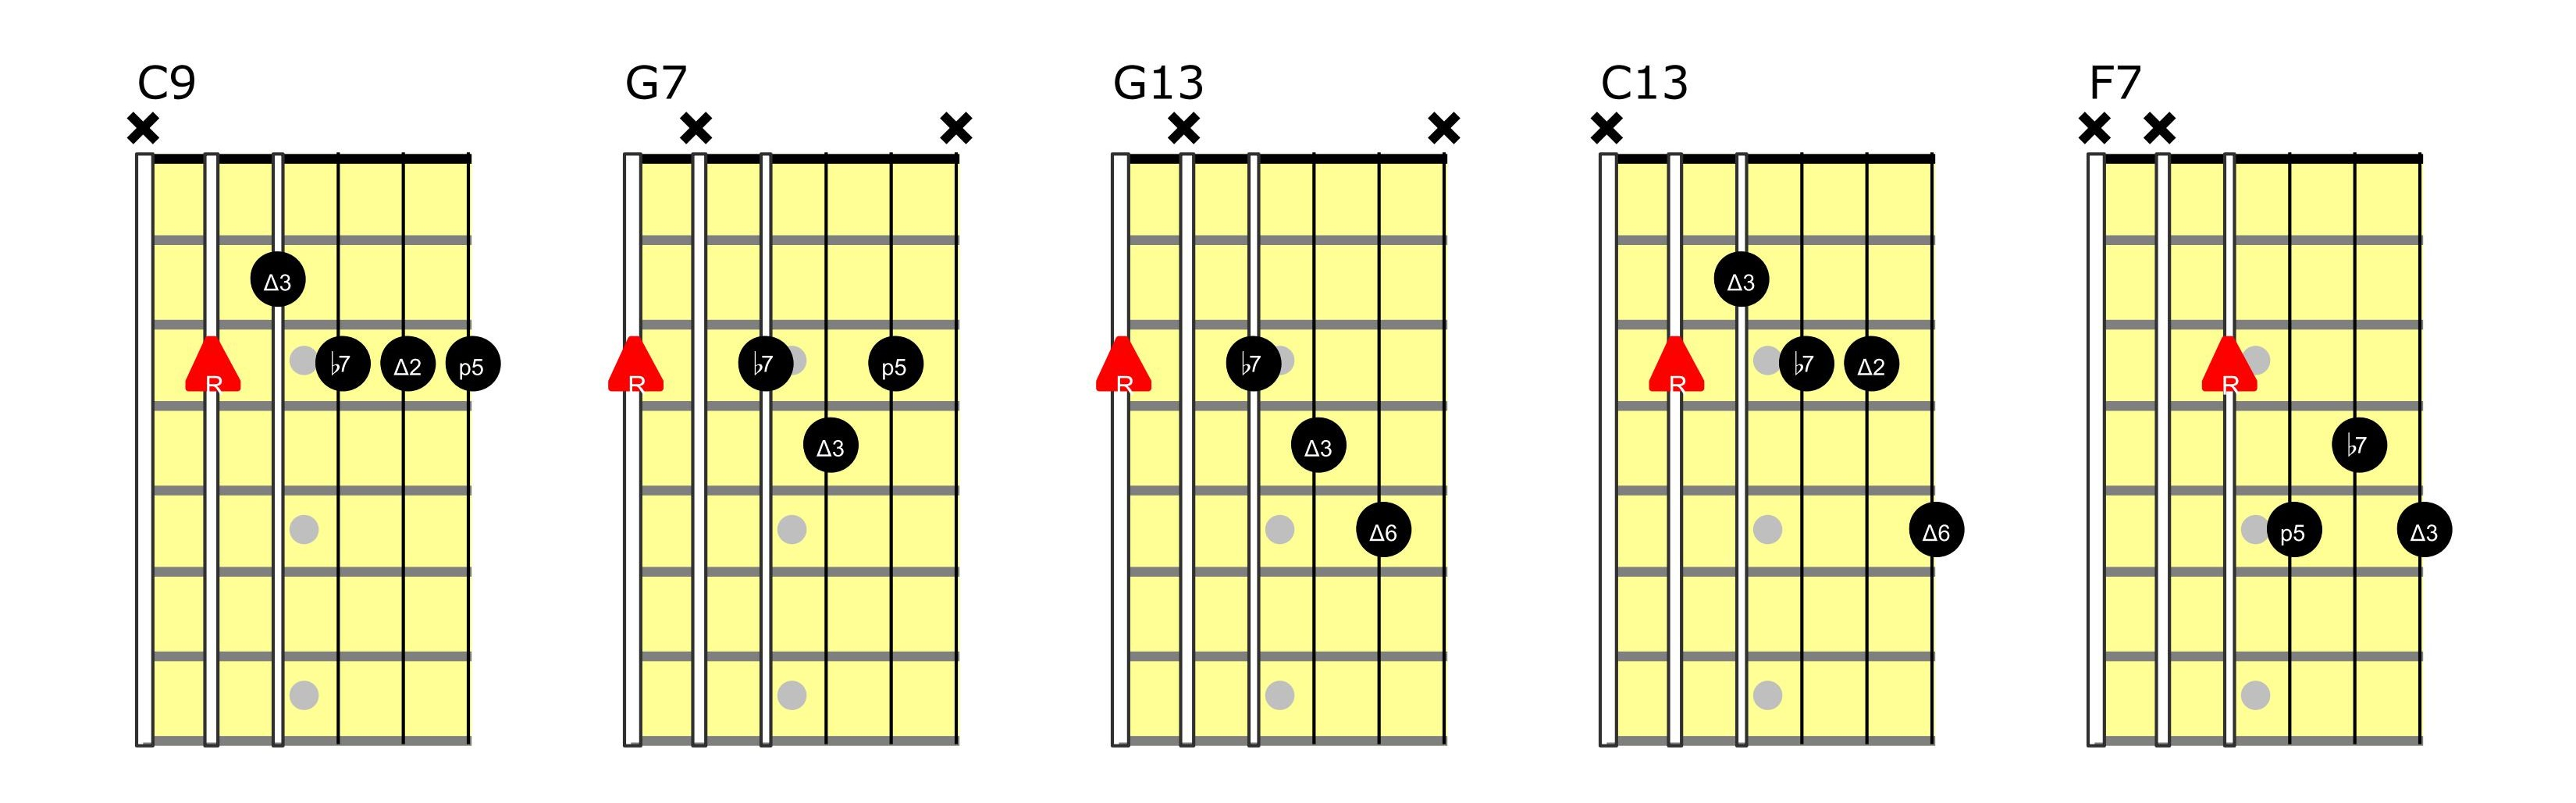 15 Basic Jazz Chords for Guitar [UPDATED]   Learn Jazz Standards